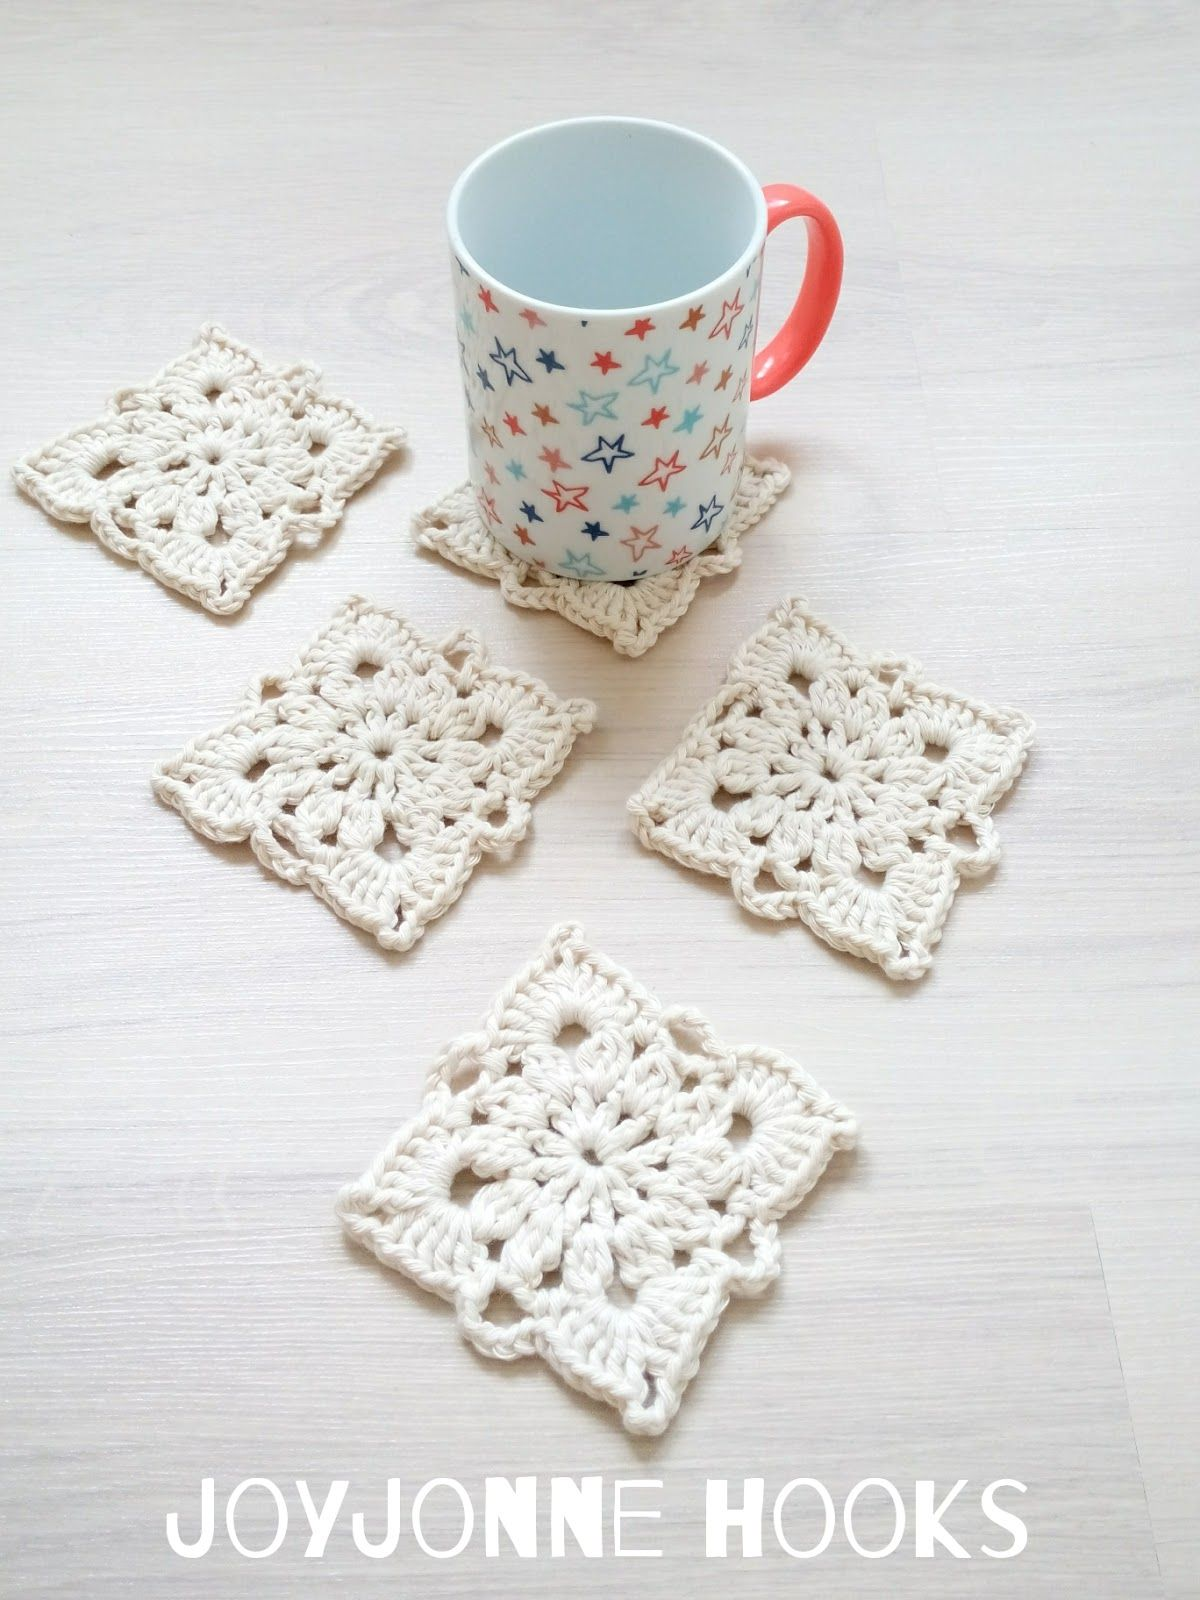 Joyjonne Hooks Square Coasters Pattern Available Onderzetter